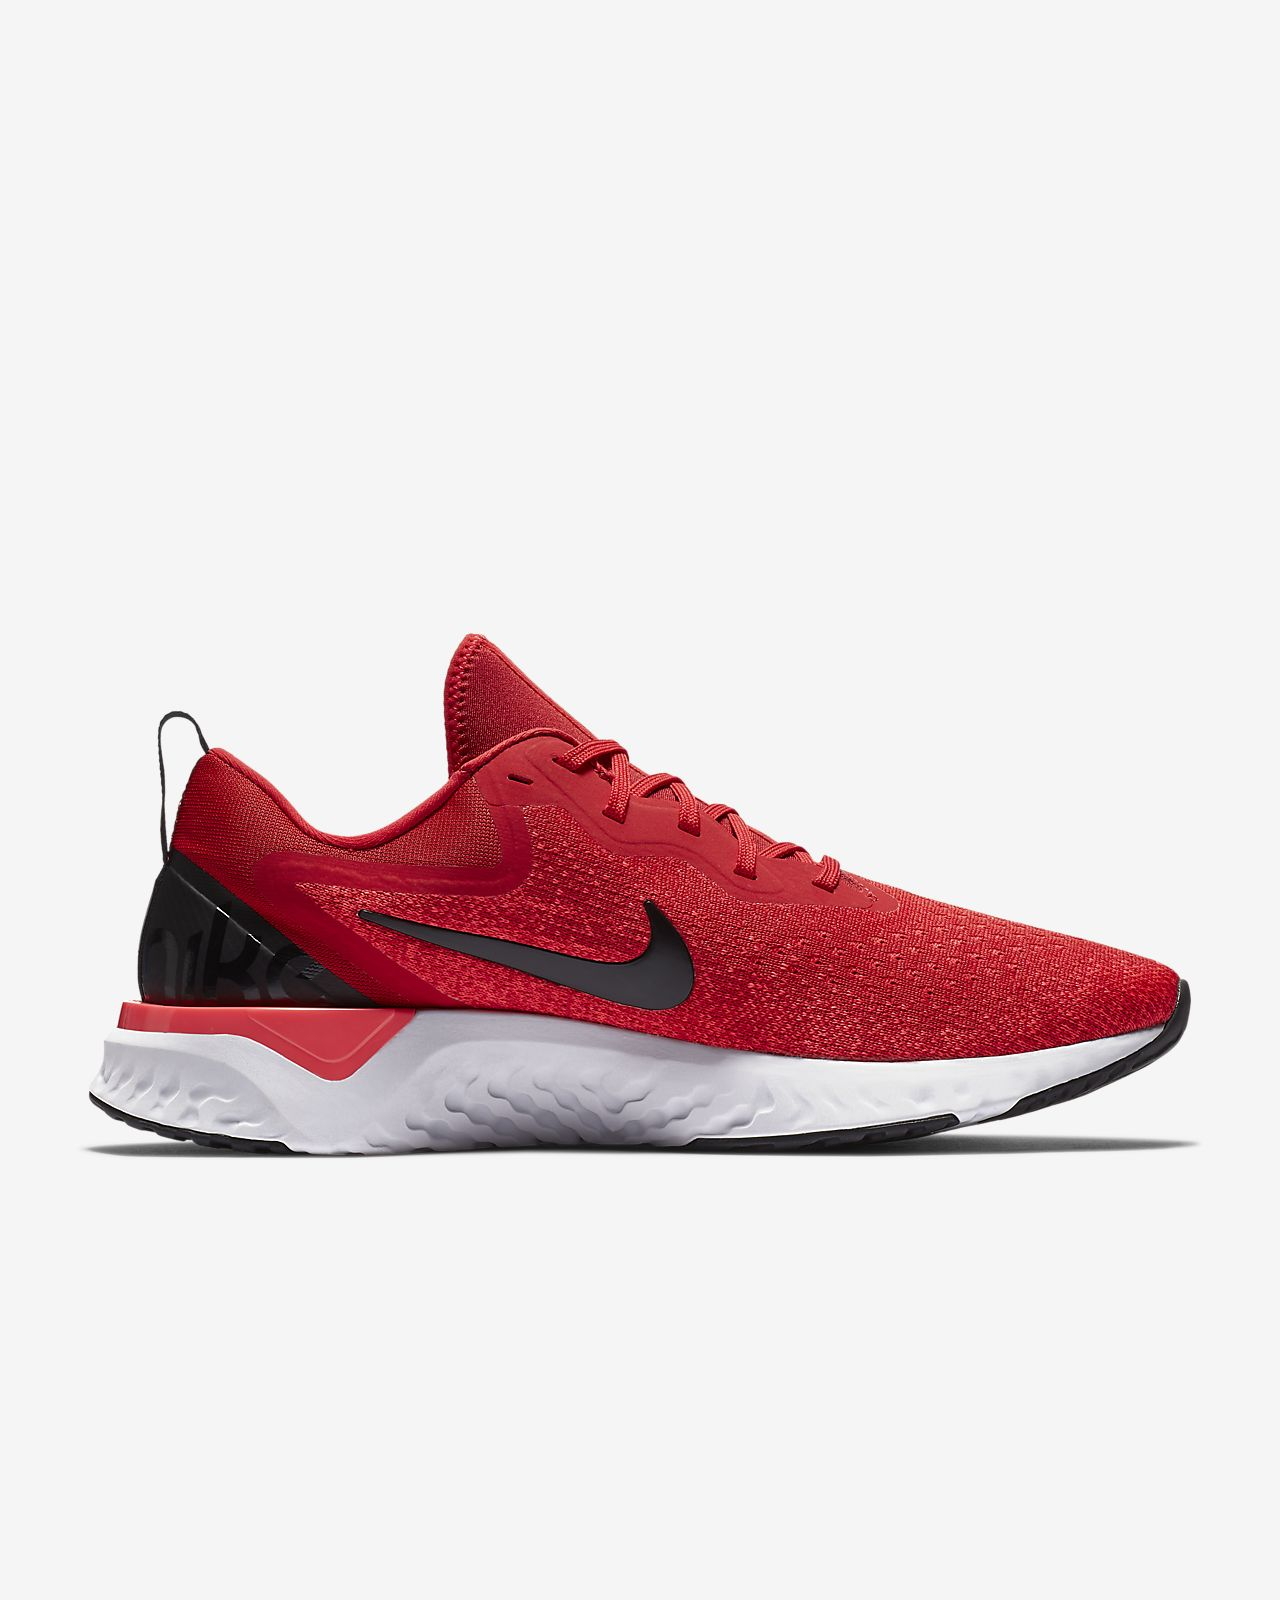 229232b98f53 Nike Odyssey React Men s Running Shoe. Nike.com ID